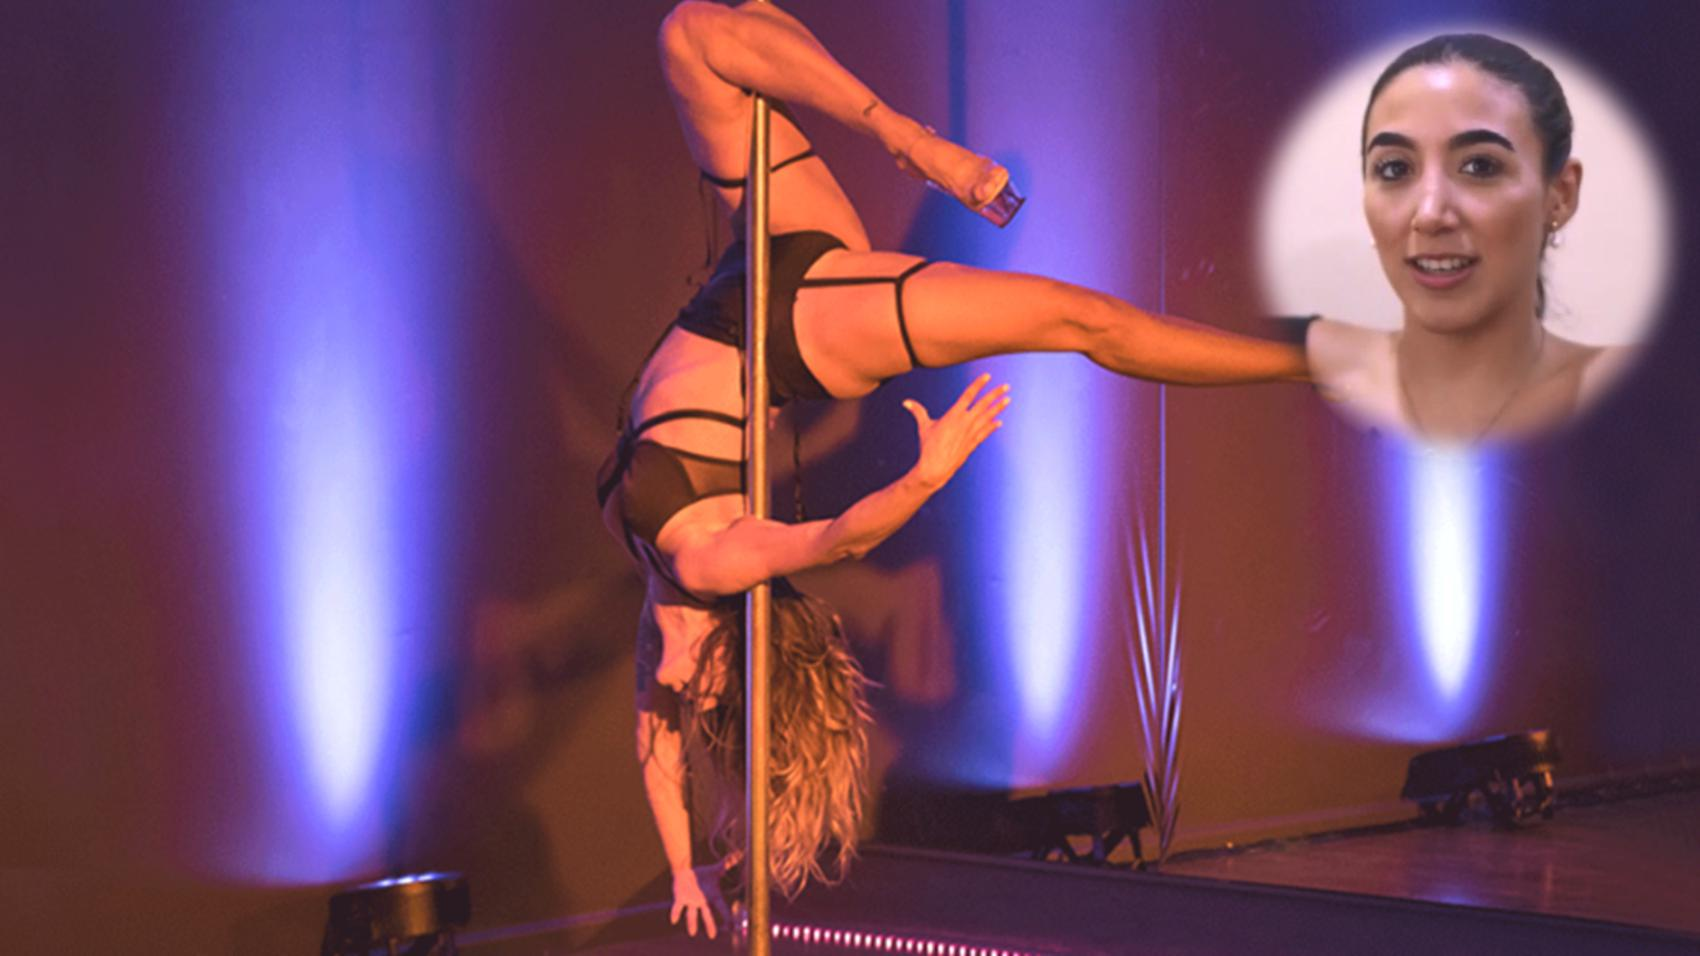 Career in Exotic Pole Dancing